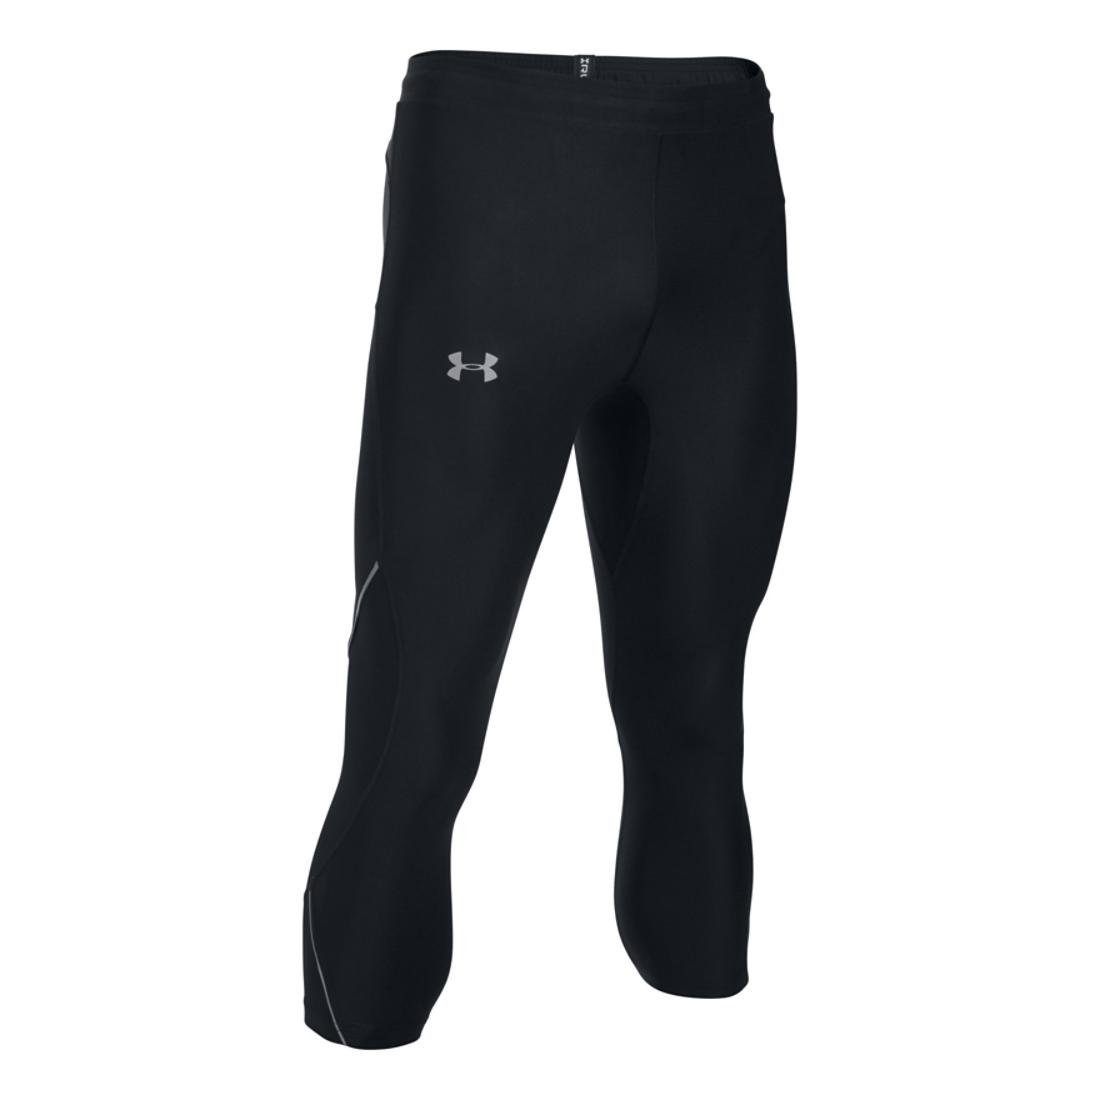 Under Armour Men's Run True ¾ Leggings, Black /Reflective, Large by Under Armour (Image #1)